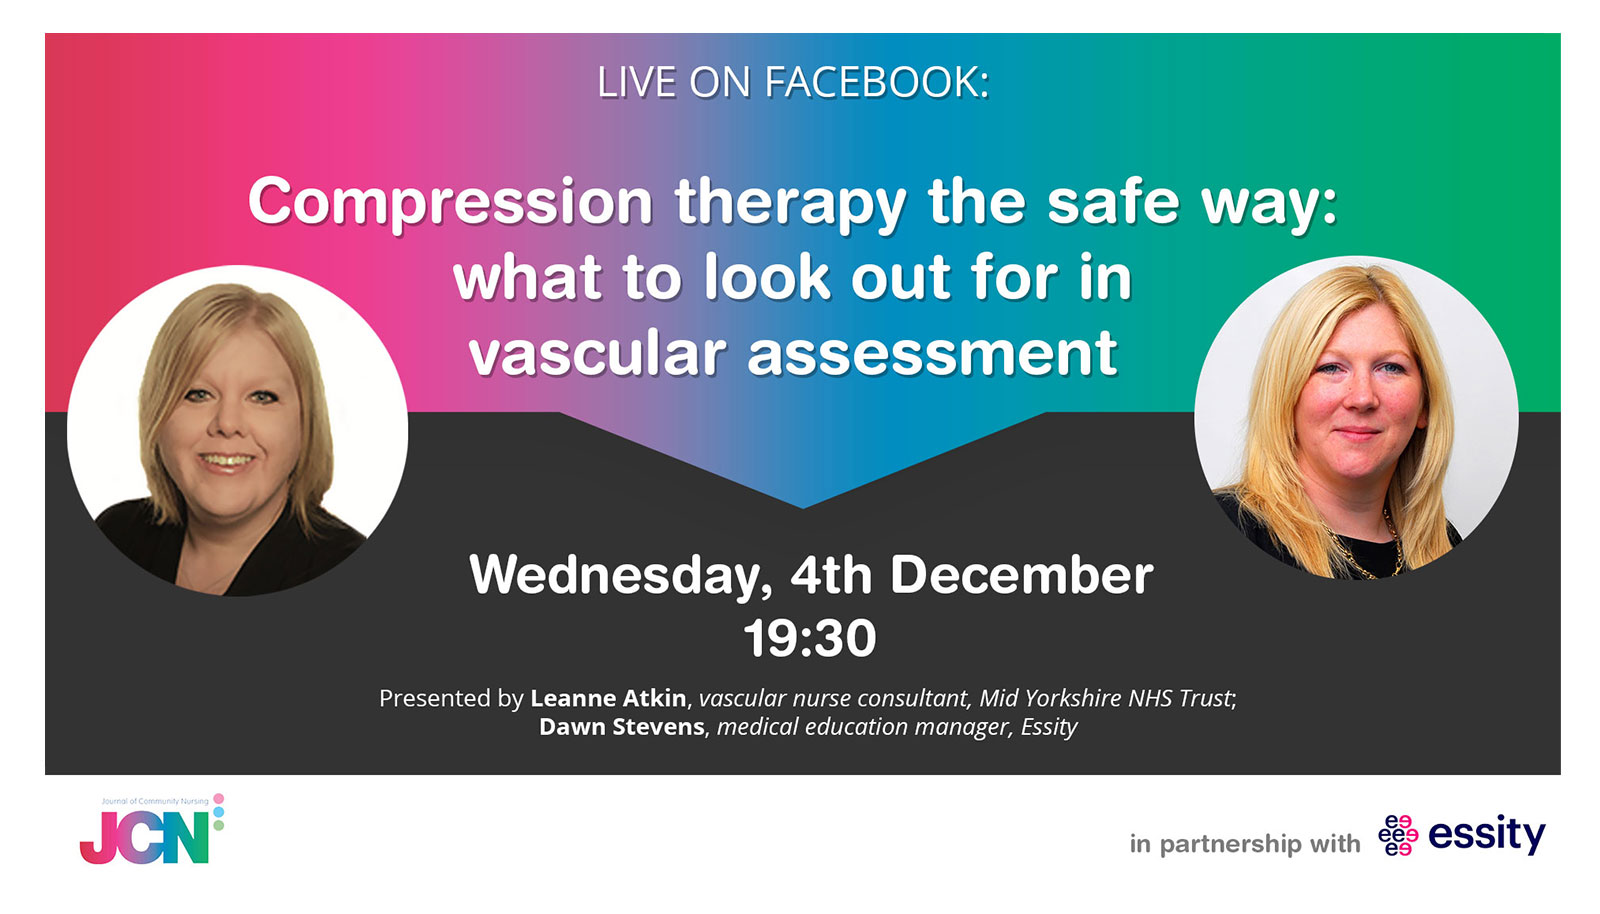 Facebook Live: Compression therapy the safe way - what to look out for in vascular assessment